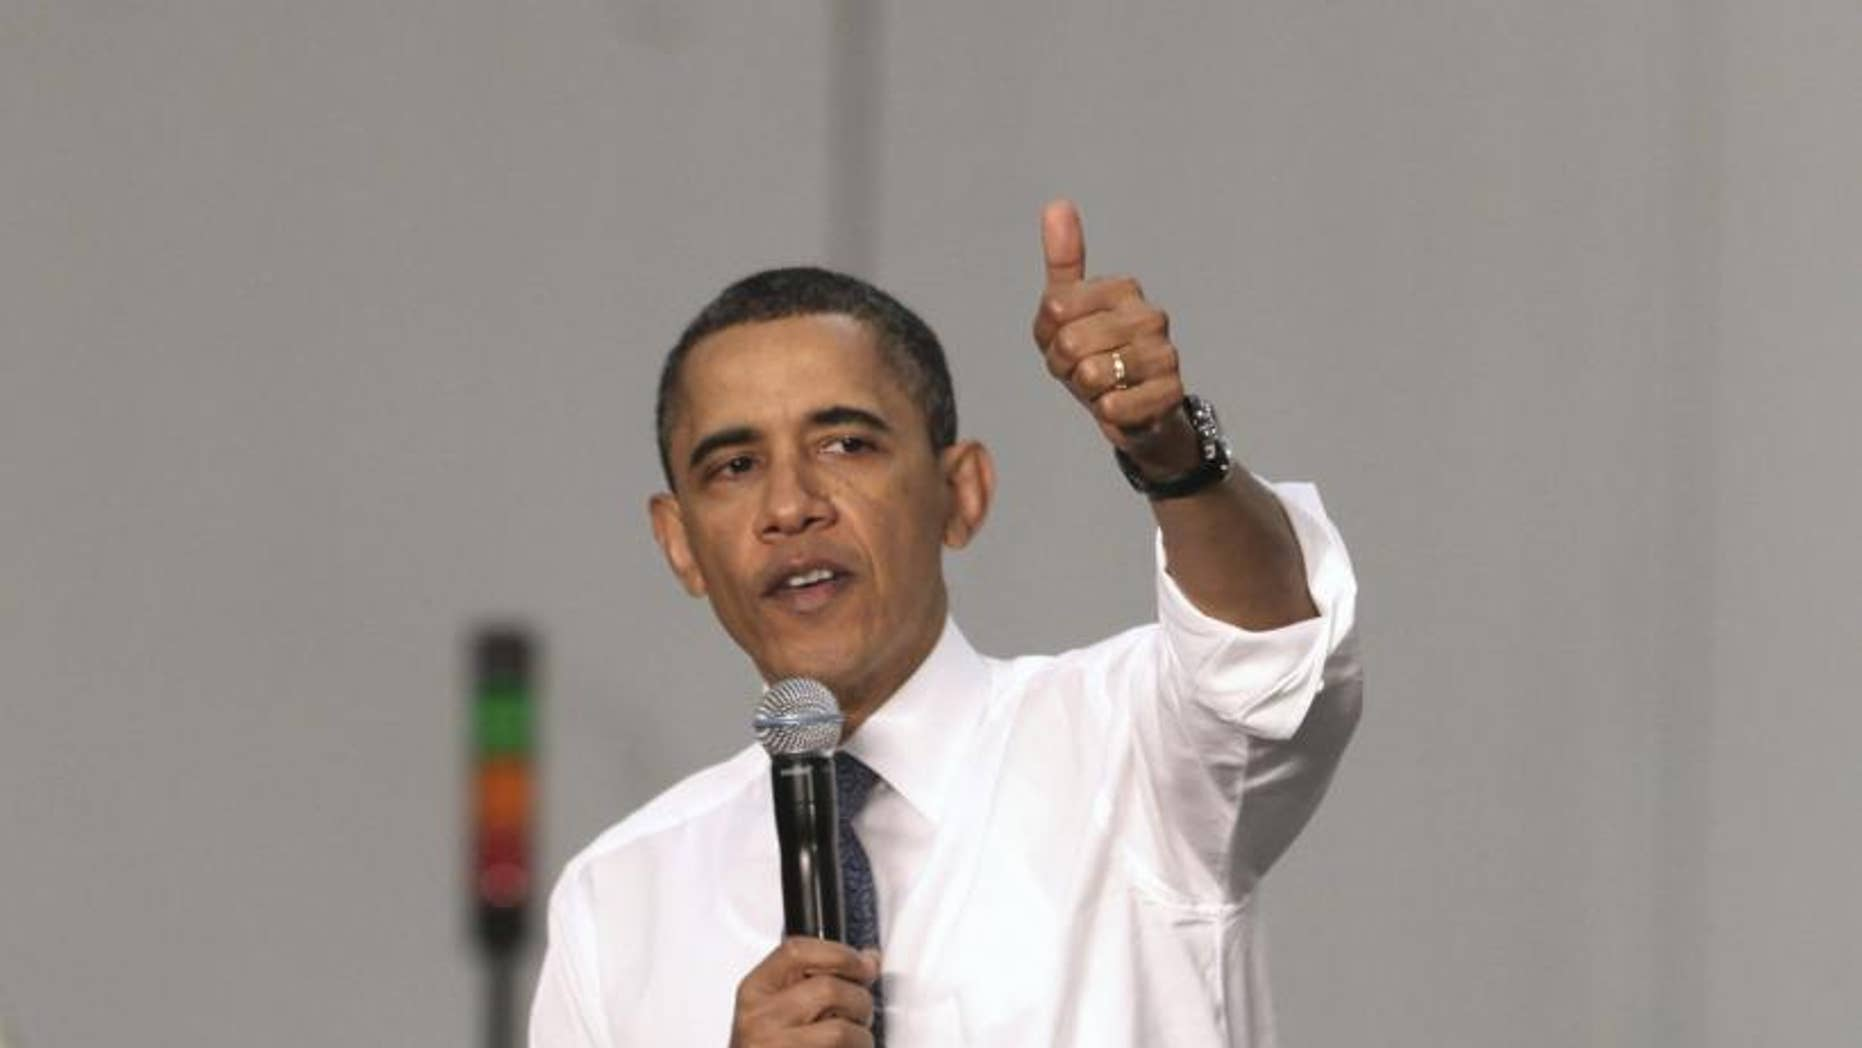 President Barack Obama gestures while addressing the crowd during a town hall meeting at ElectraTherm, Inc. a small renewable energy company in Reno, Nev., Thursday, April 21, 2011. (AP Photo/Rich Pedroncelli)